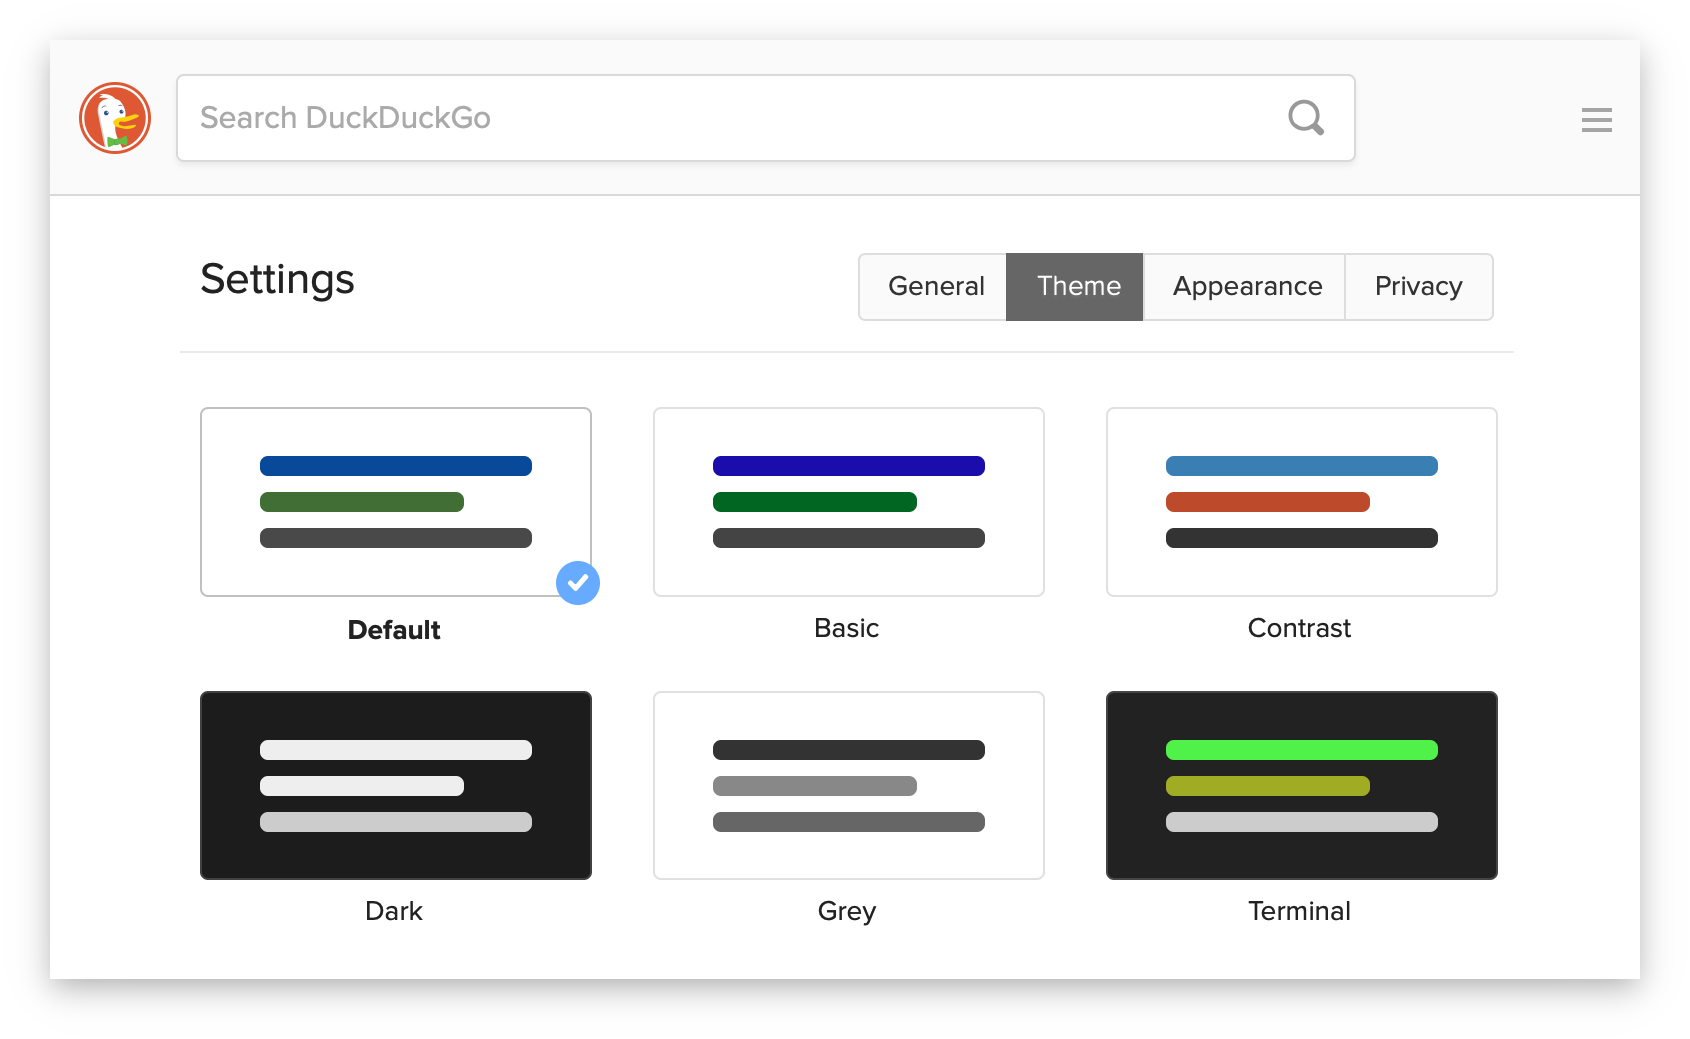 Screenshot showing the themes available in DuckDuckGo Search.